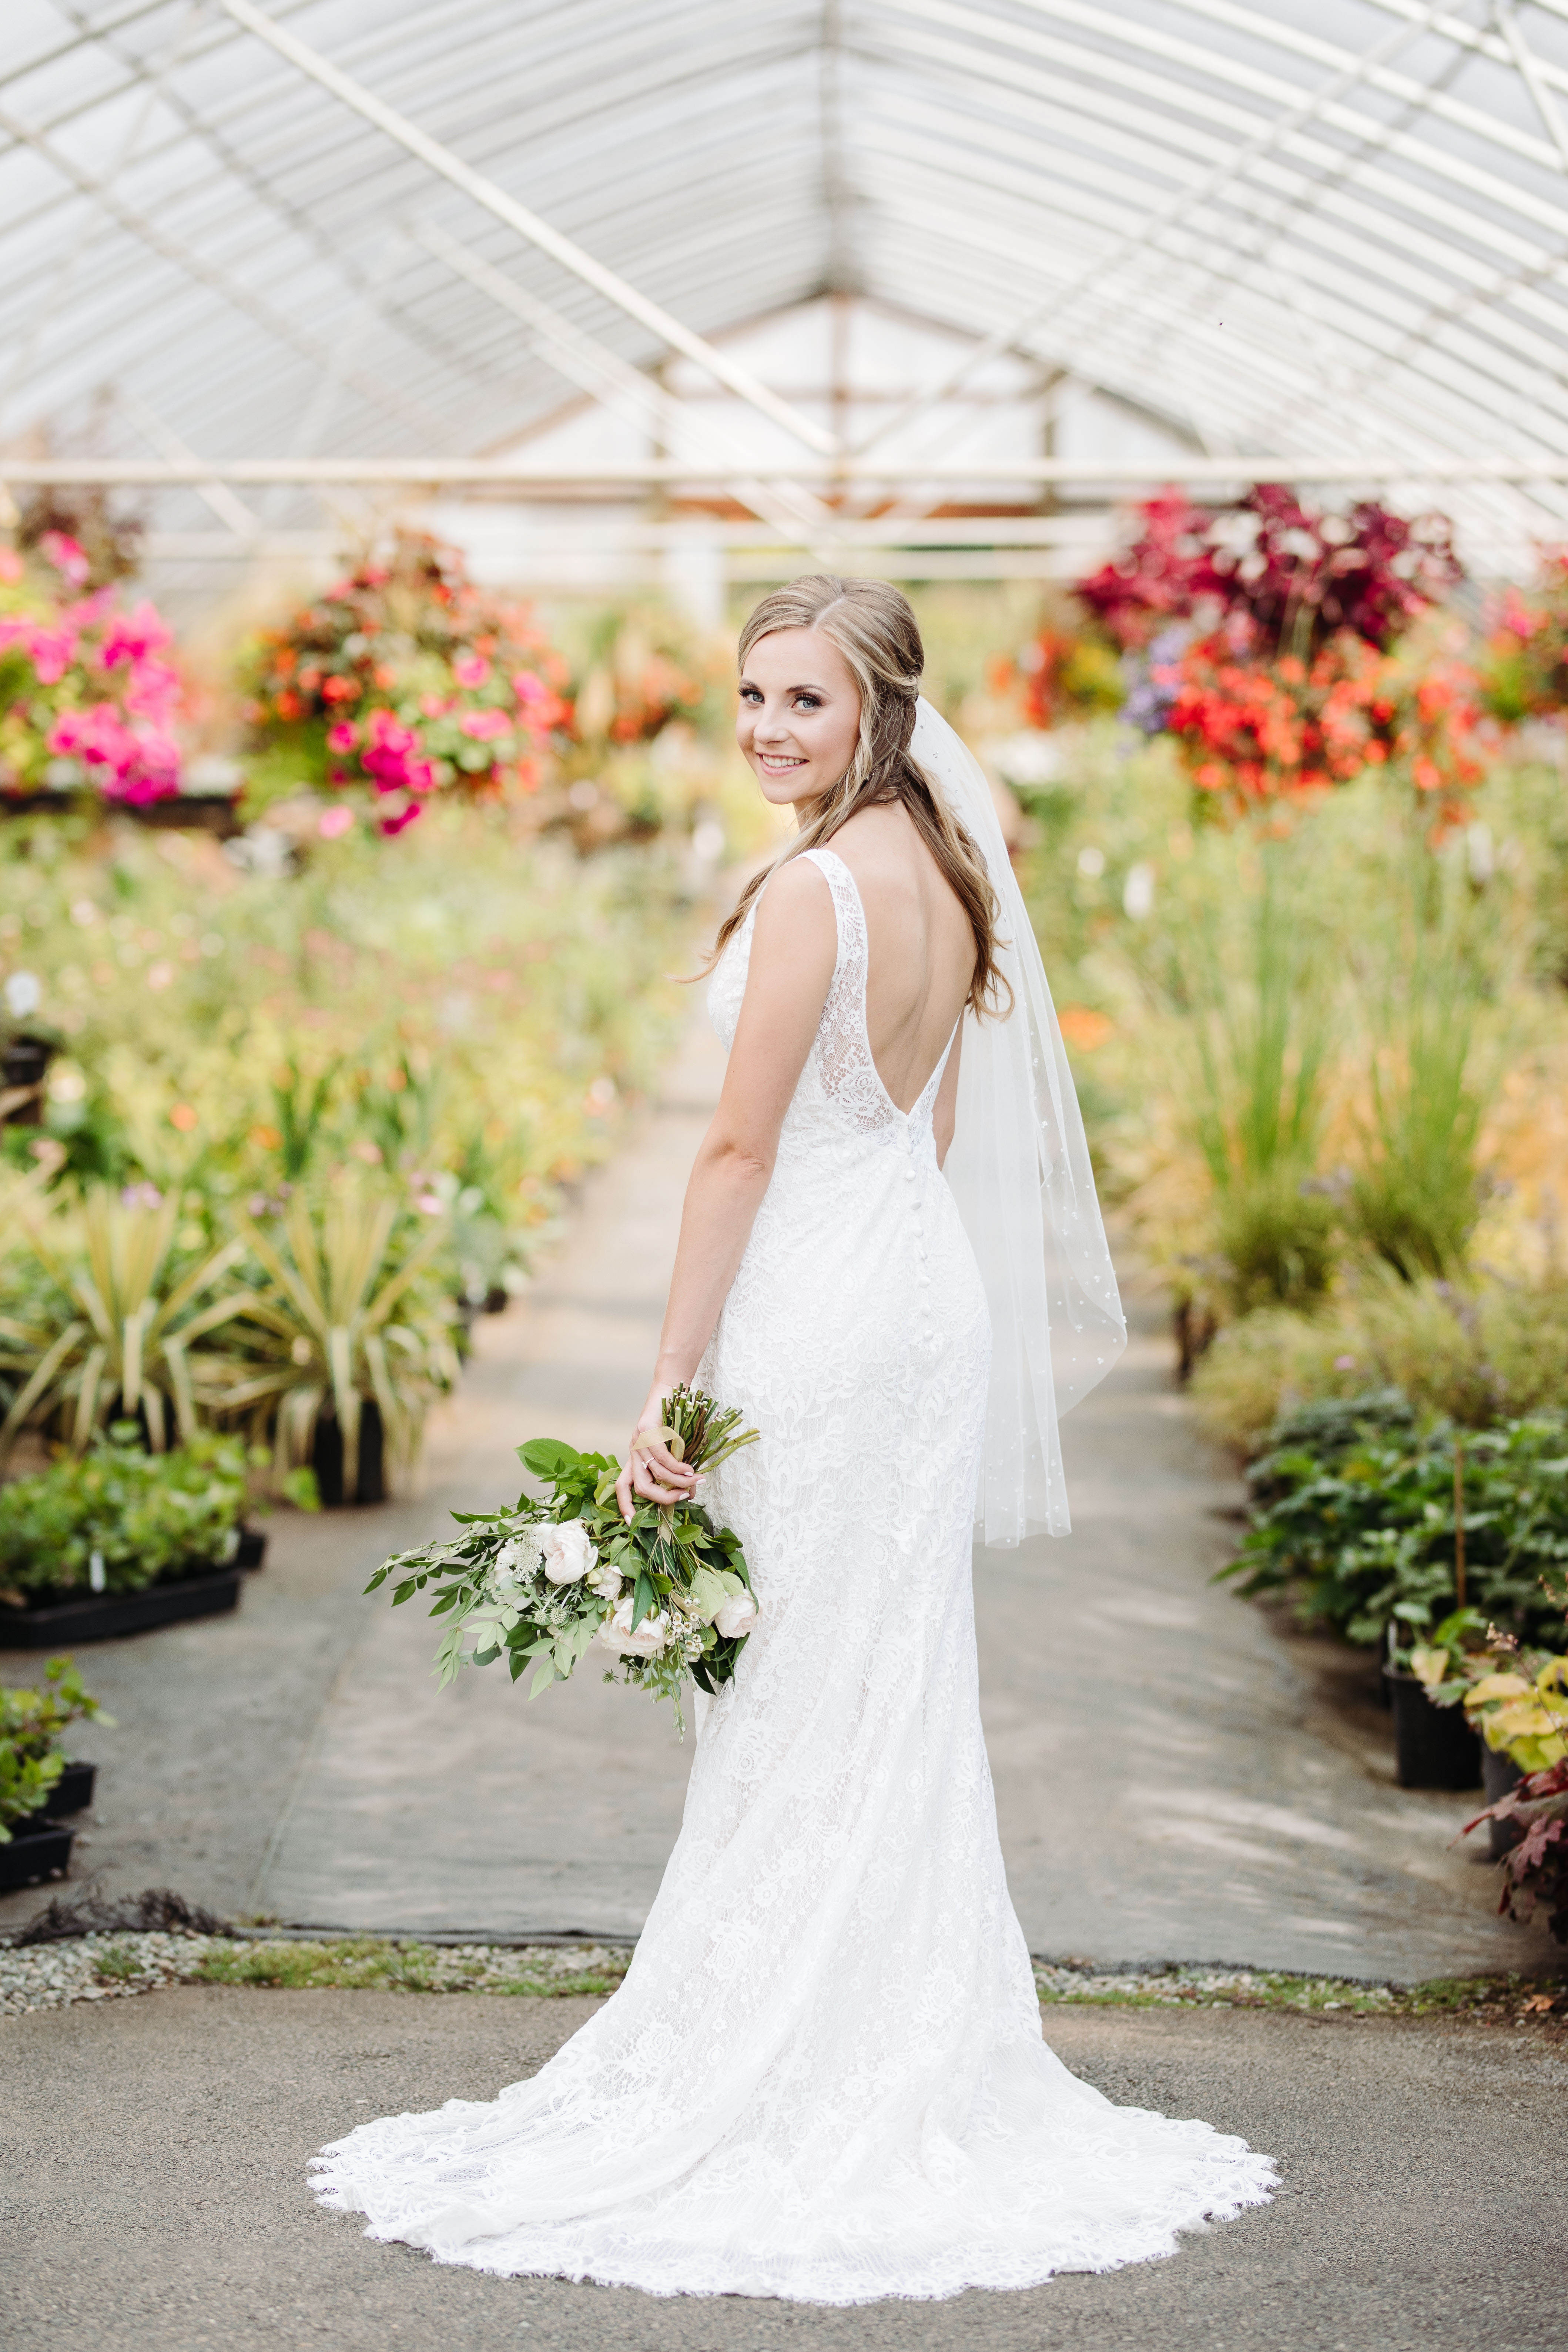 Bride with lace backless dress and veil - photo by Cameron Zegers Photography